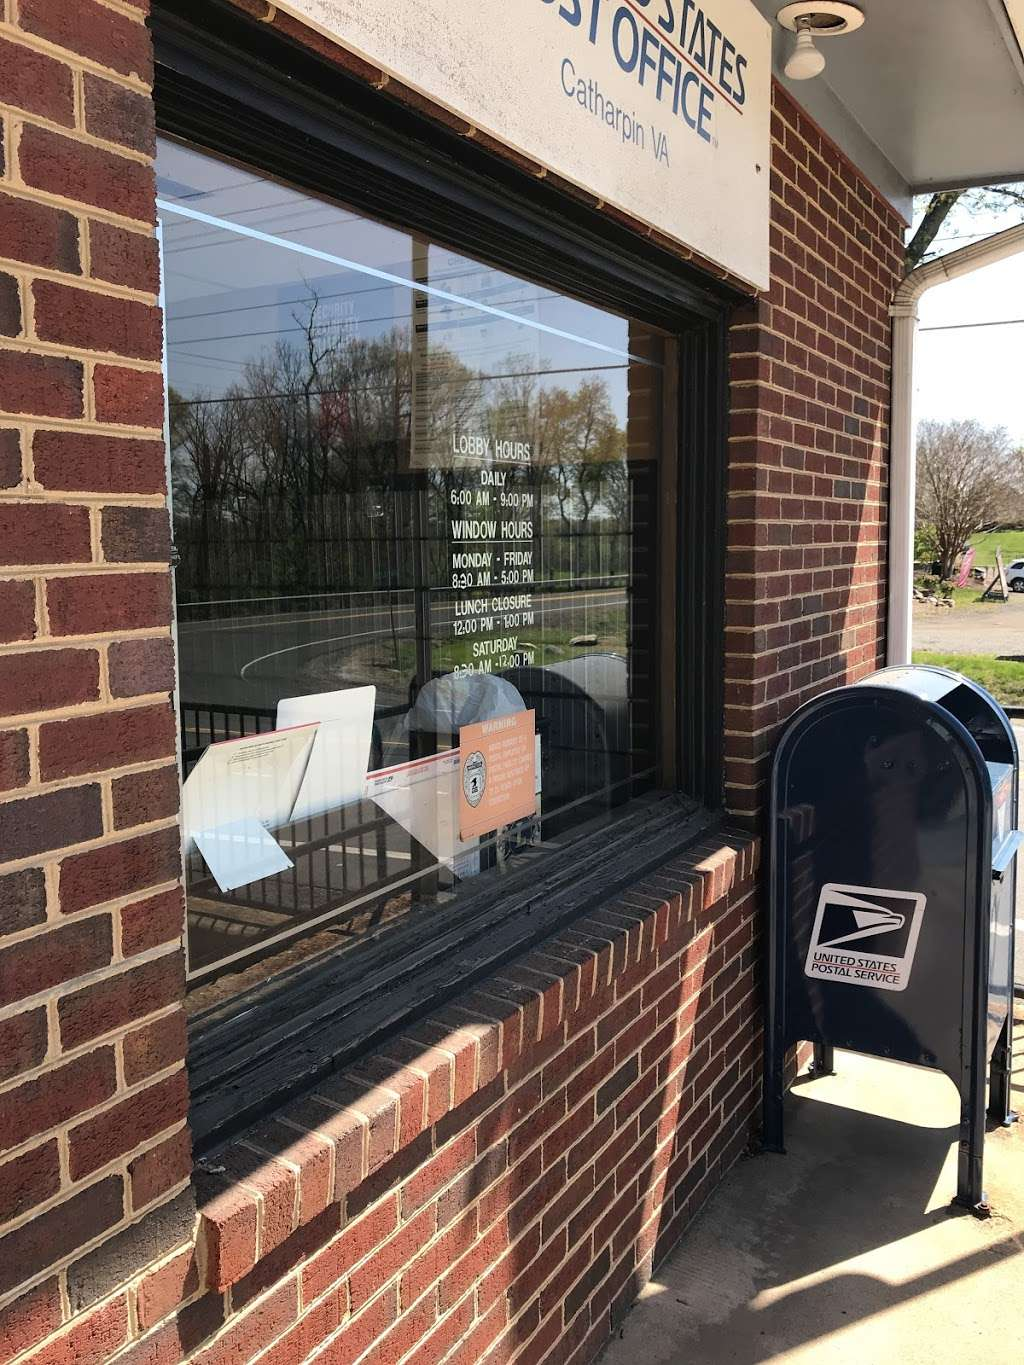 United States Postal Service - post office  | Photo 4 of 7 | Address: 4625 Sudley Rd, Catharpin, VA 20143, USA | Phone: (800) 275-8777